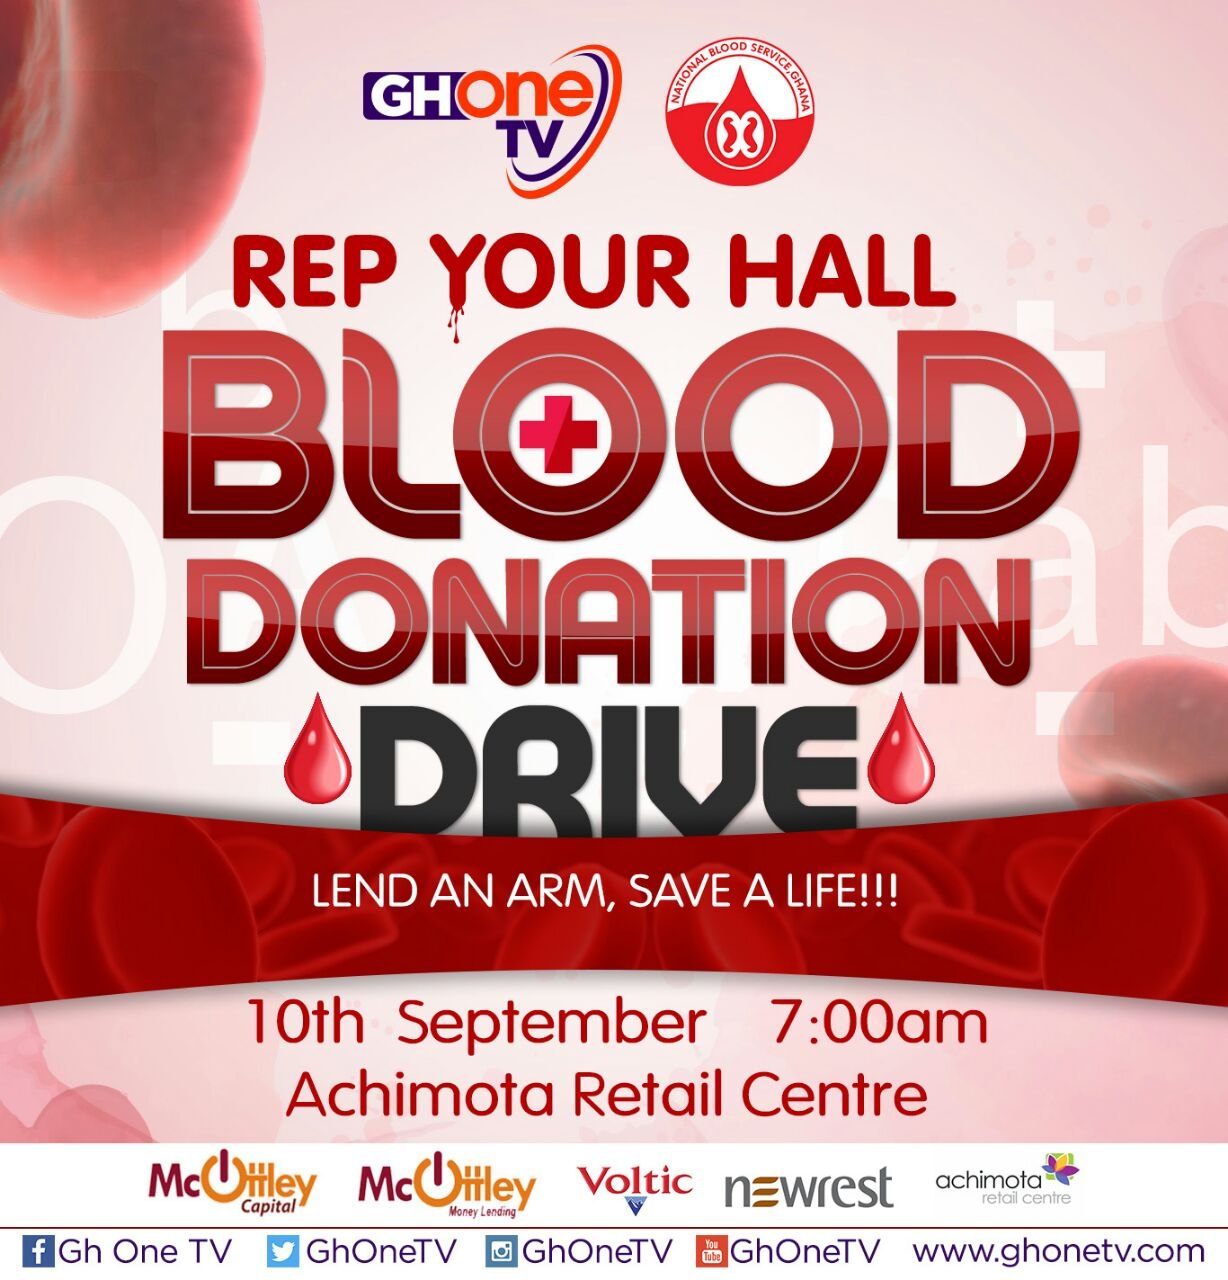 GHOne TV embarks on Blood Donation Drive September 10